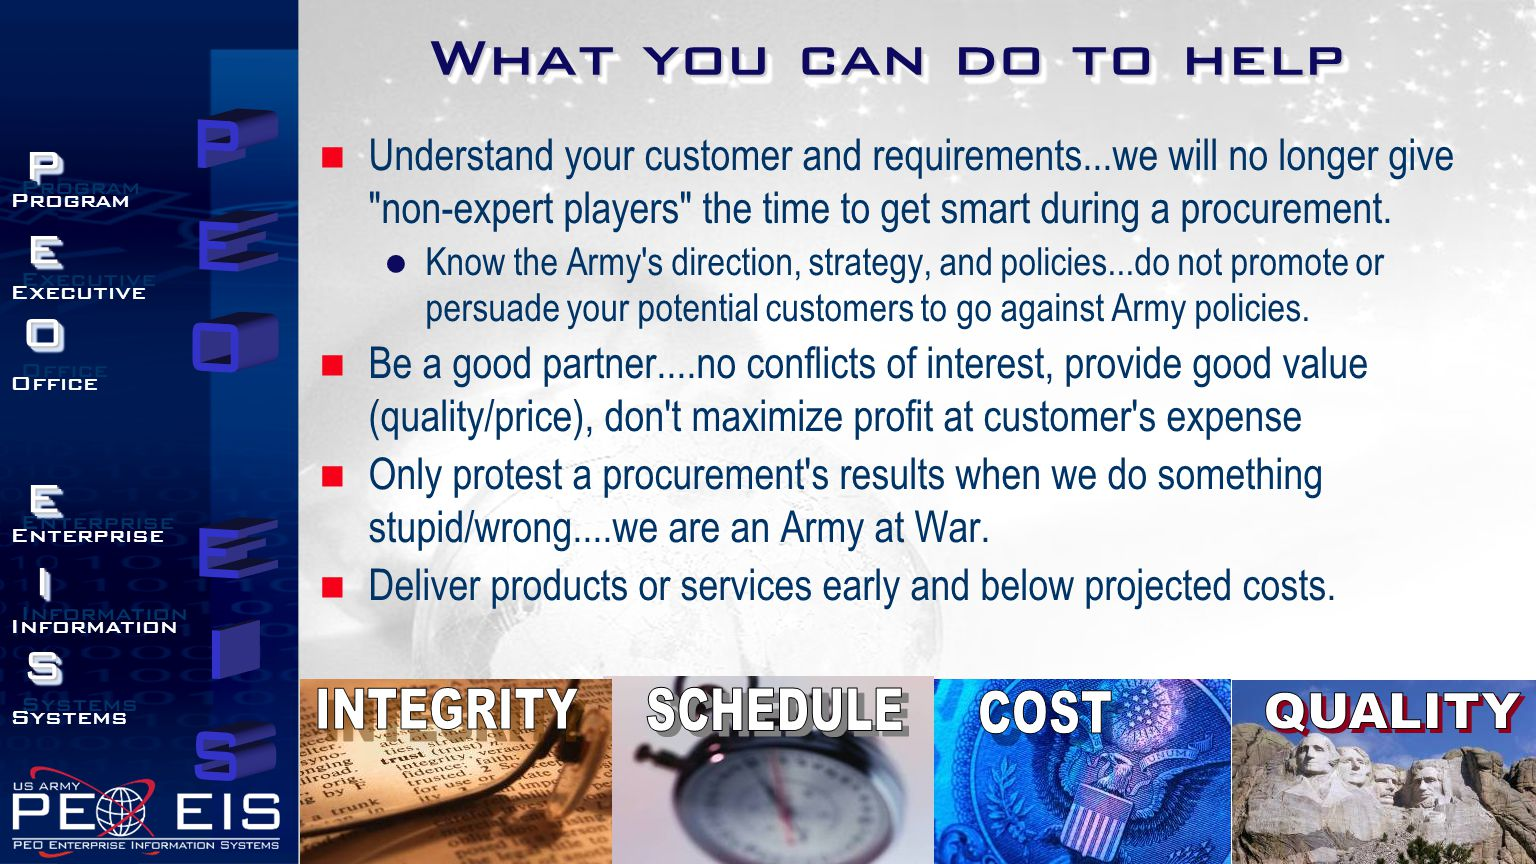 What you can do to help INTEGRITY SCHEDULE COST QUALITY